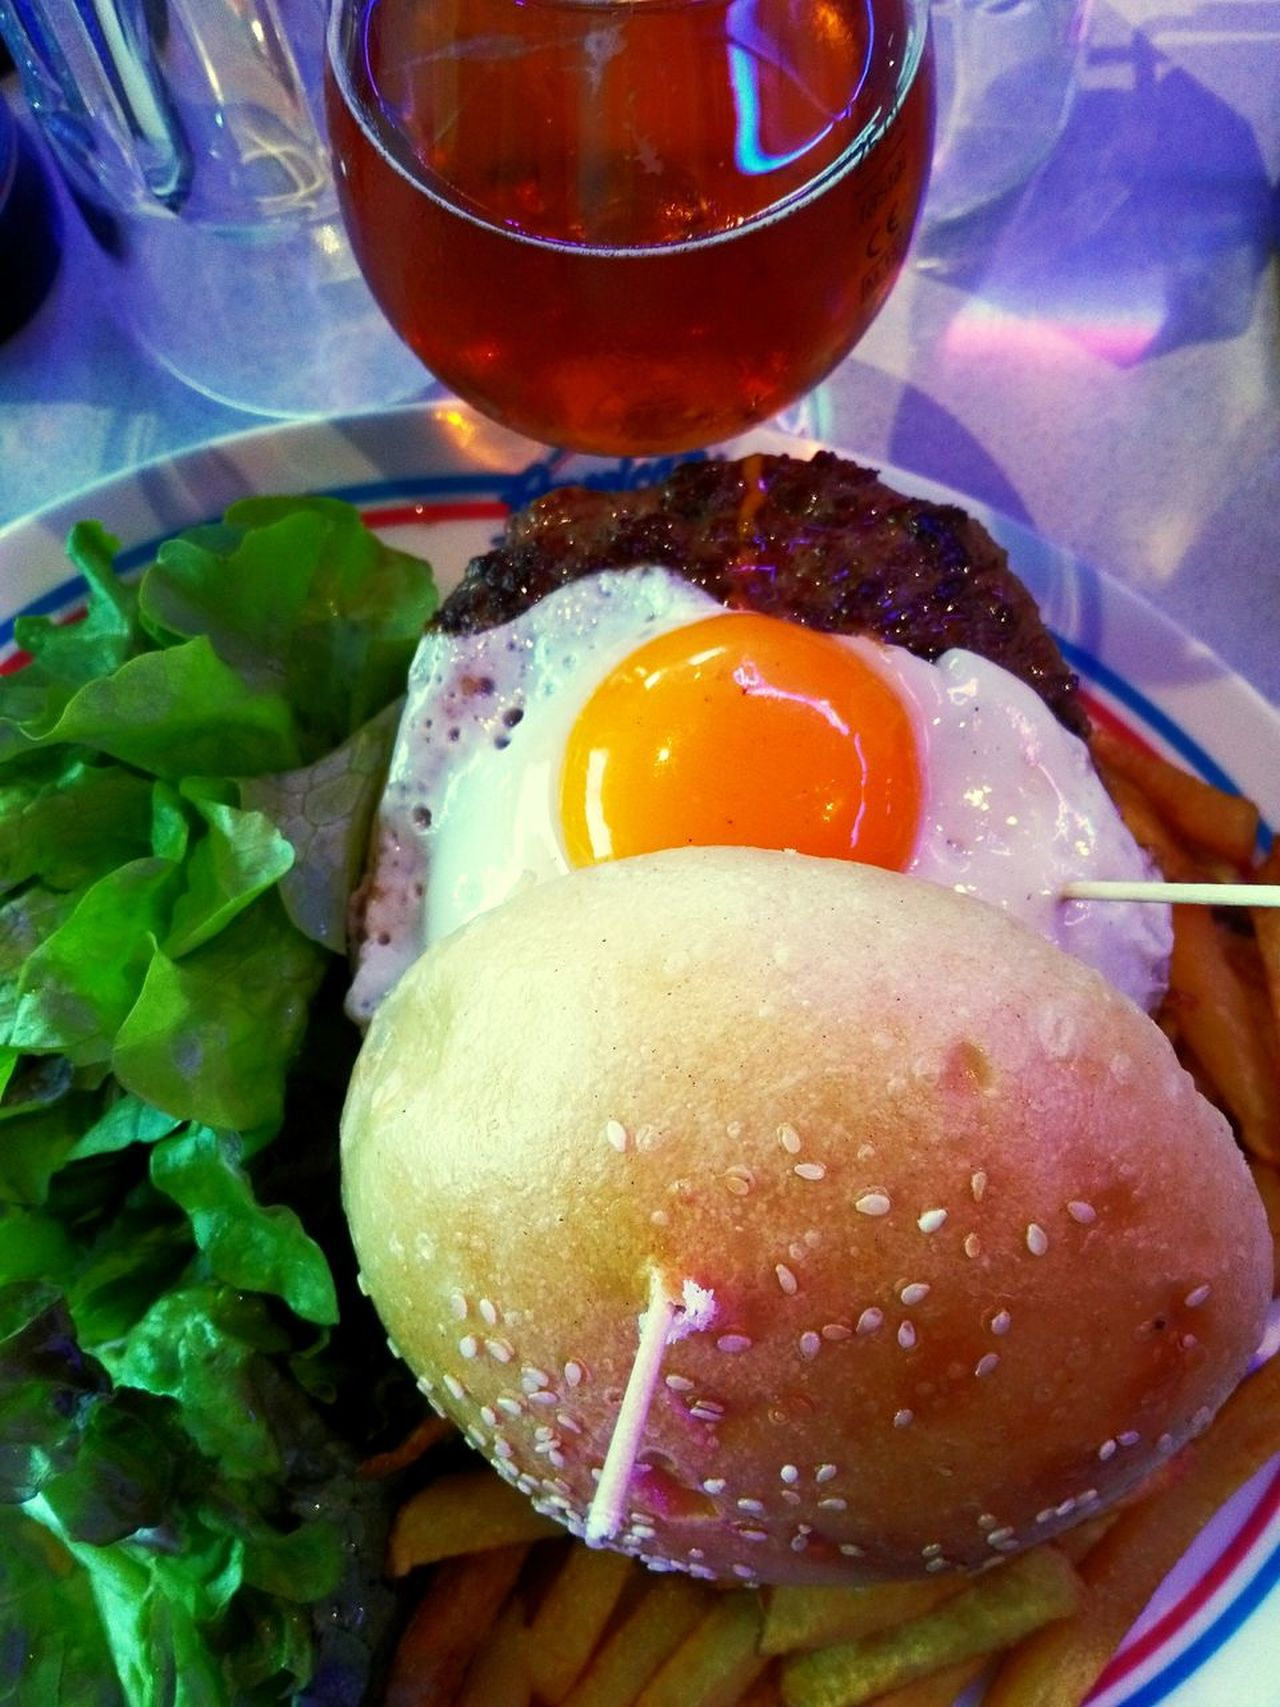 Egg Food And Drink Food Indoors  Ready-to-eat Freshness No People Healthy Eating Table Plate Egg Yolk Serving Size Meal Close-up Day Hamburger Restaurant American Dream United States American Junk Food Calories Salad Beer Pleasure